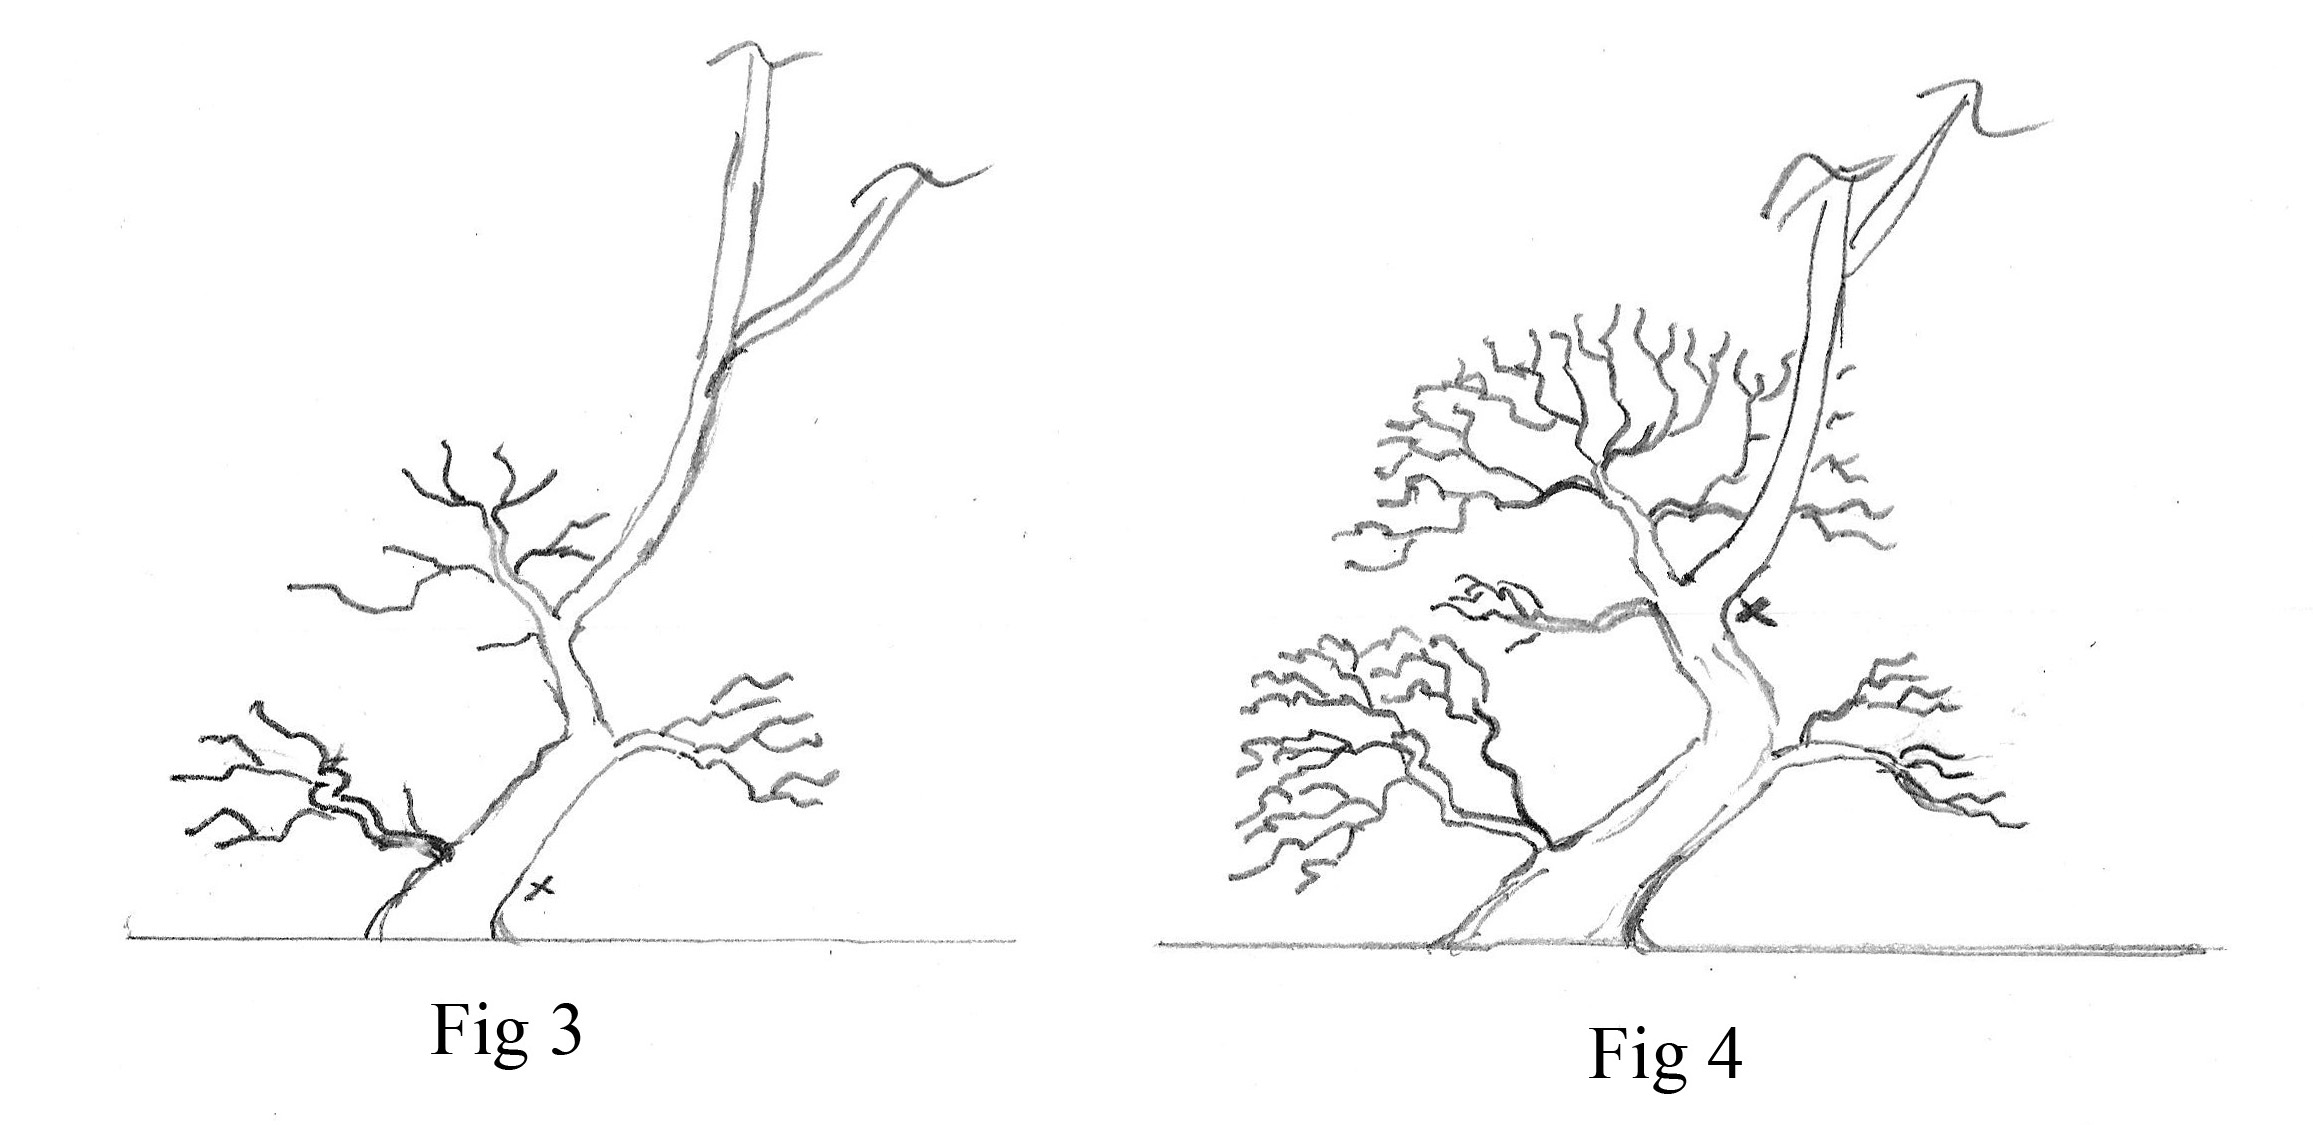 bssf  bonsai society of san francisco  u00bb suggestions for underdeveloped deciduous bonsai